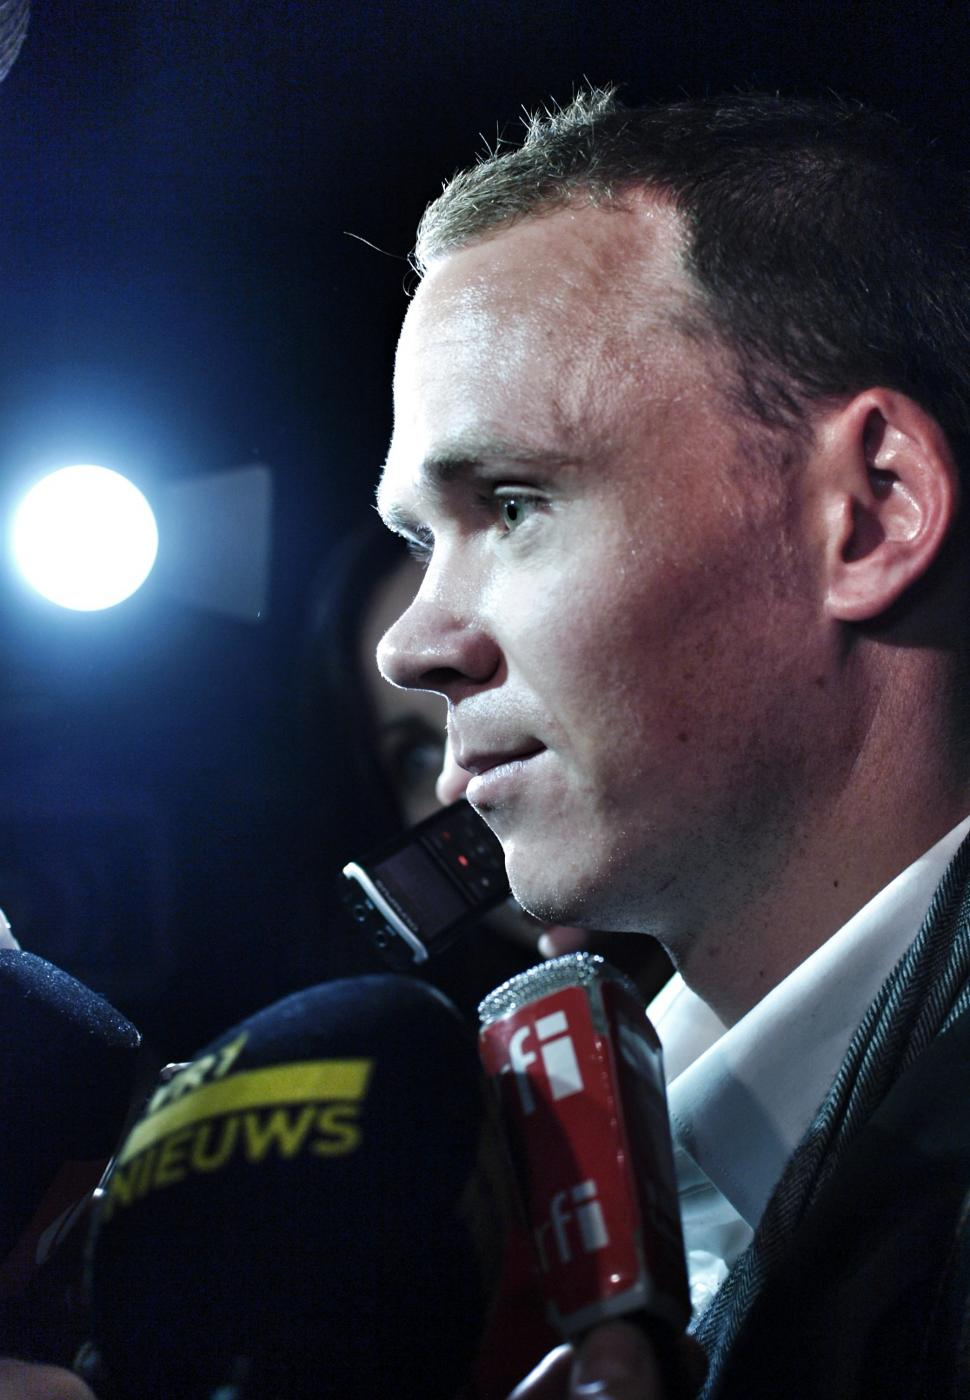 Chris Froome at 2013 Tour de France presentation (copyright Simon MacMichael)